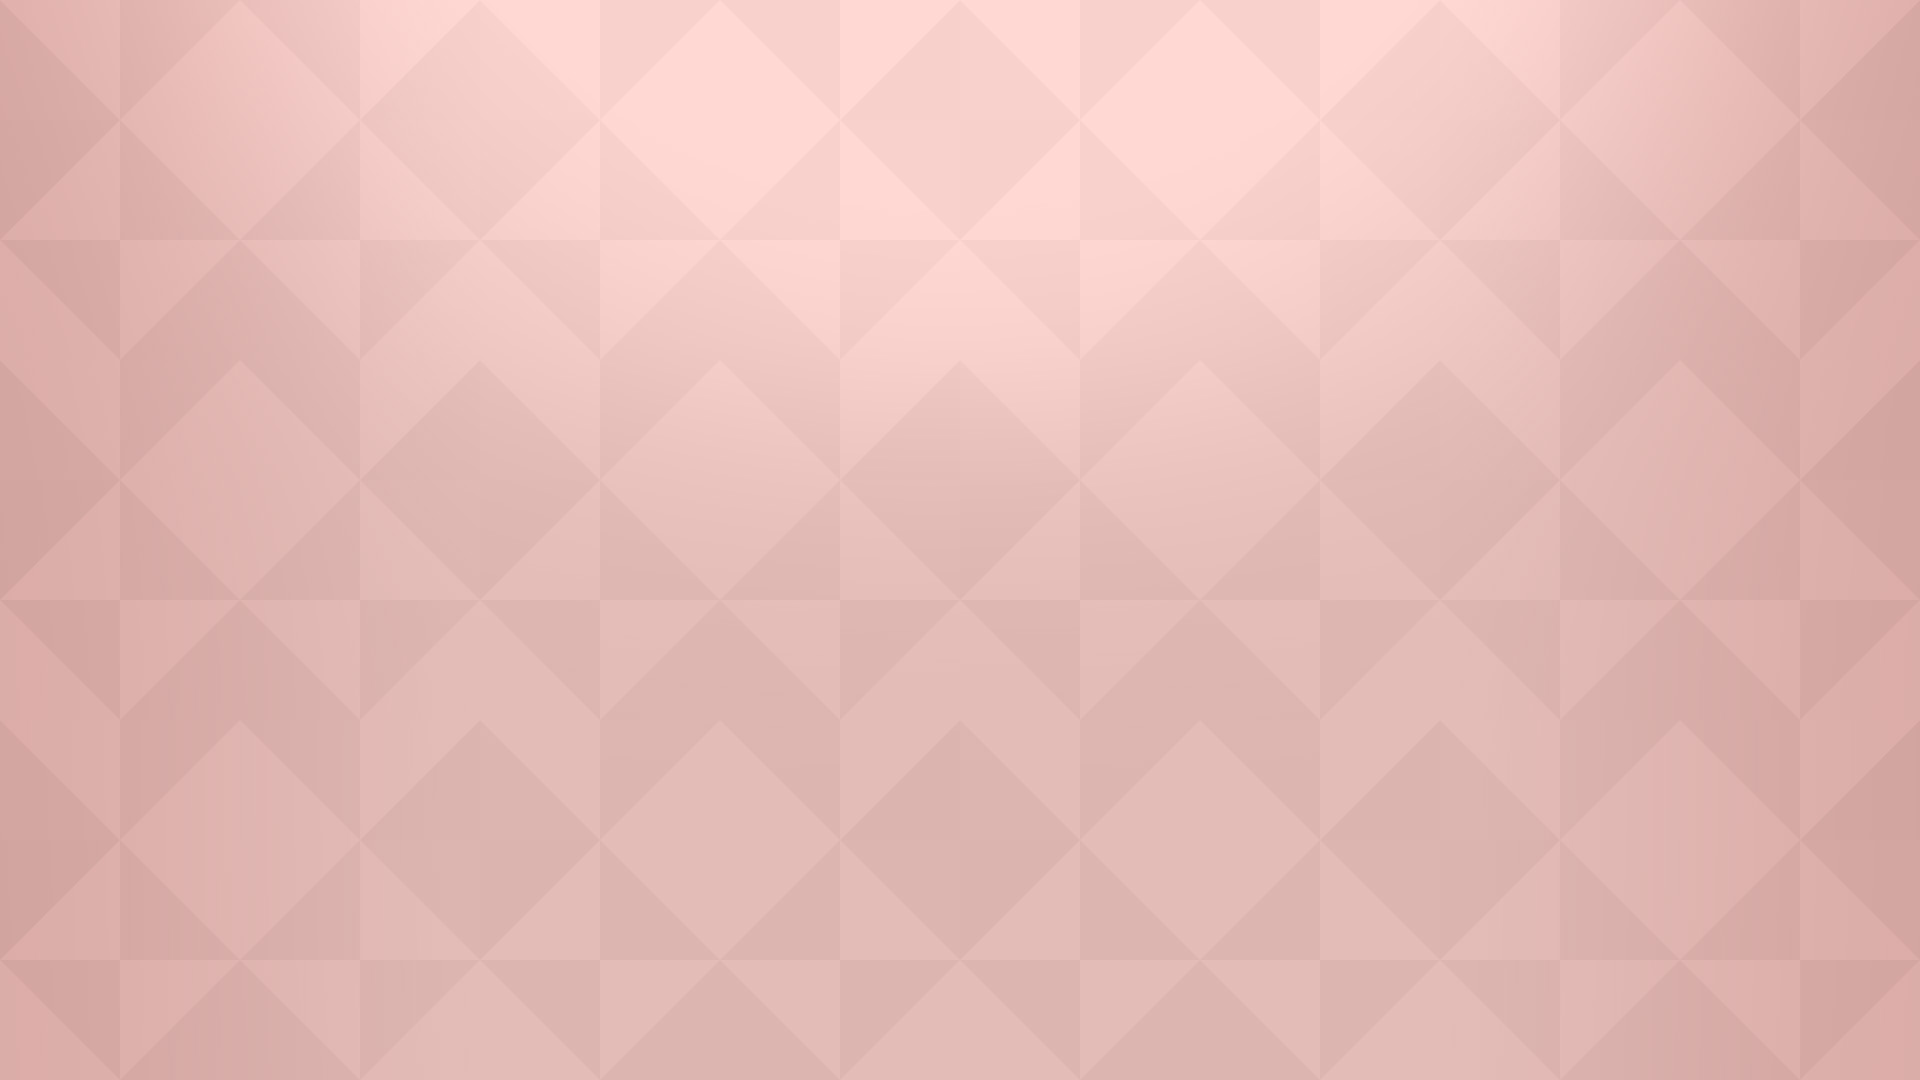 Coral Pink Background Images Pictures   Becuo 1920x1080